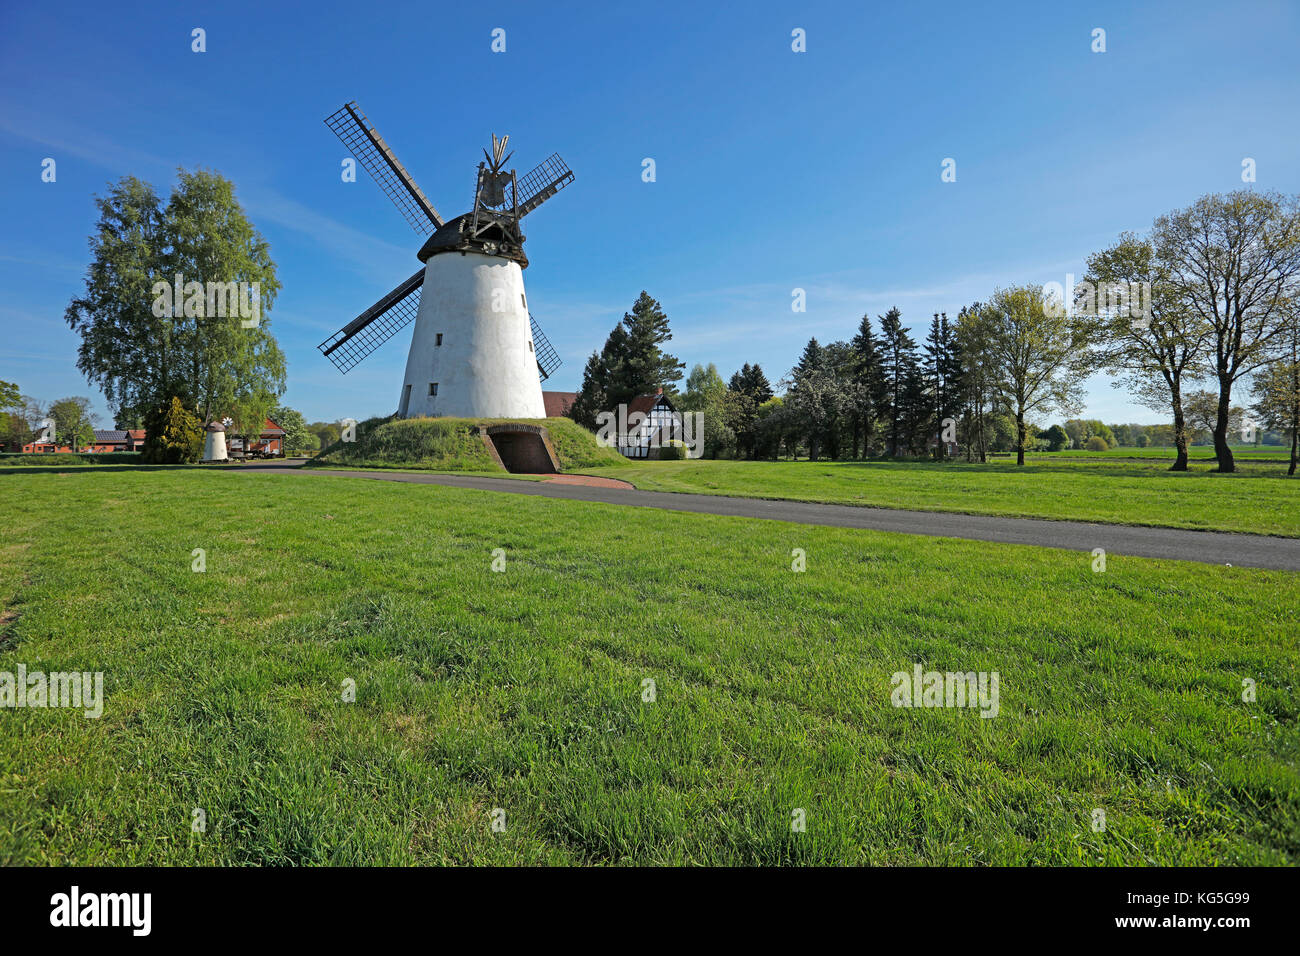 Embankment Dutchman windmill Wegholm with bakehouse and oven on Westfälischen Mühlenstraße (route), - Stock Image